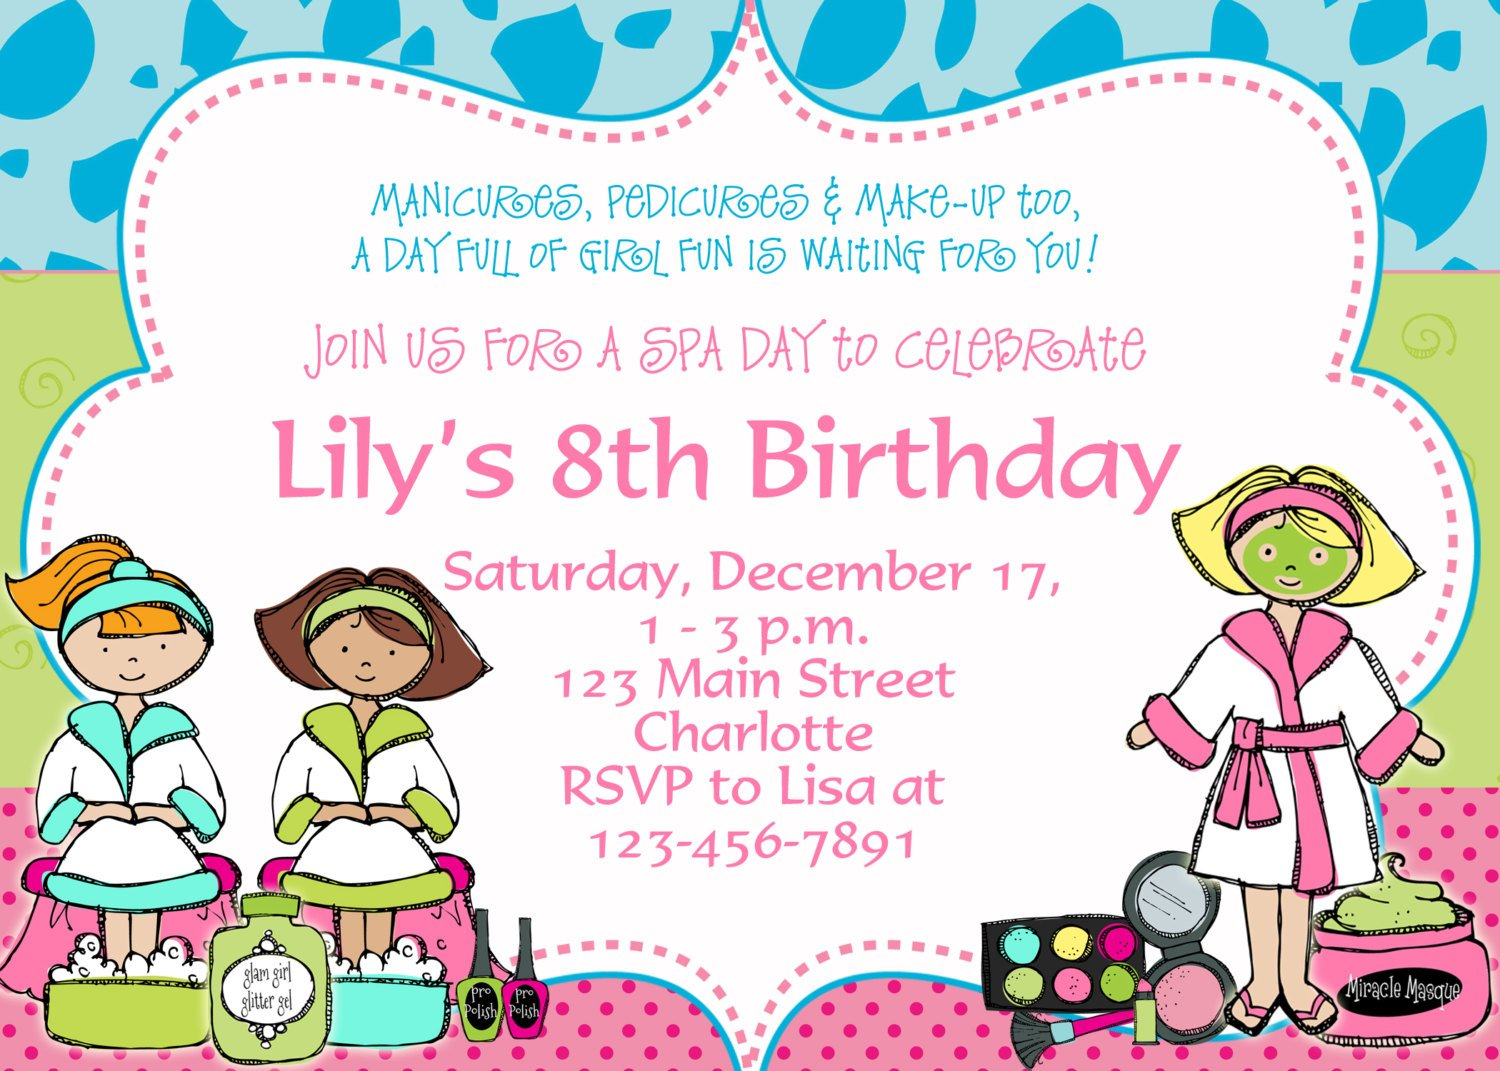 Free Printable Spa Birthday Party Invitation Templates  Birthday Invitation Design Templates